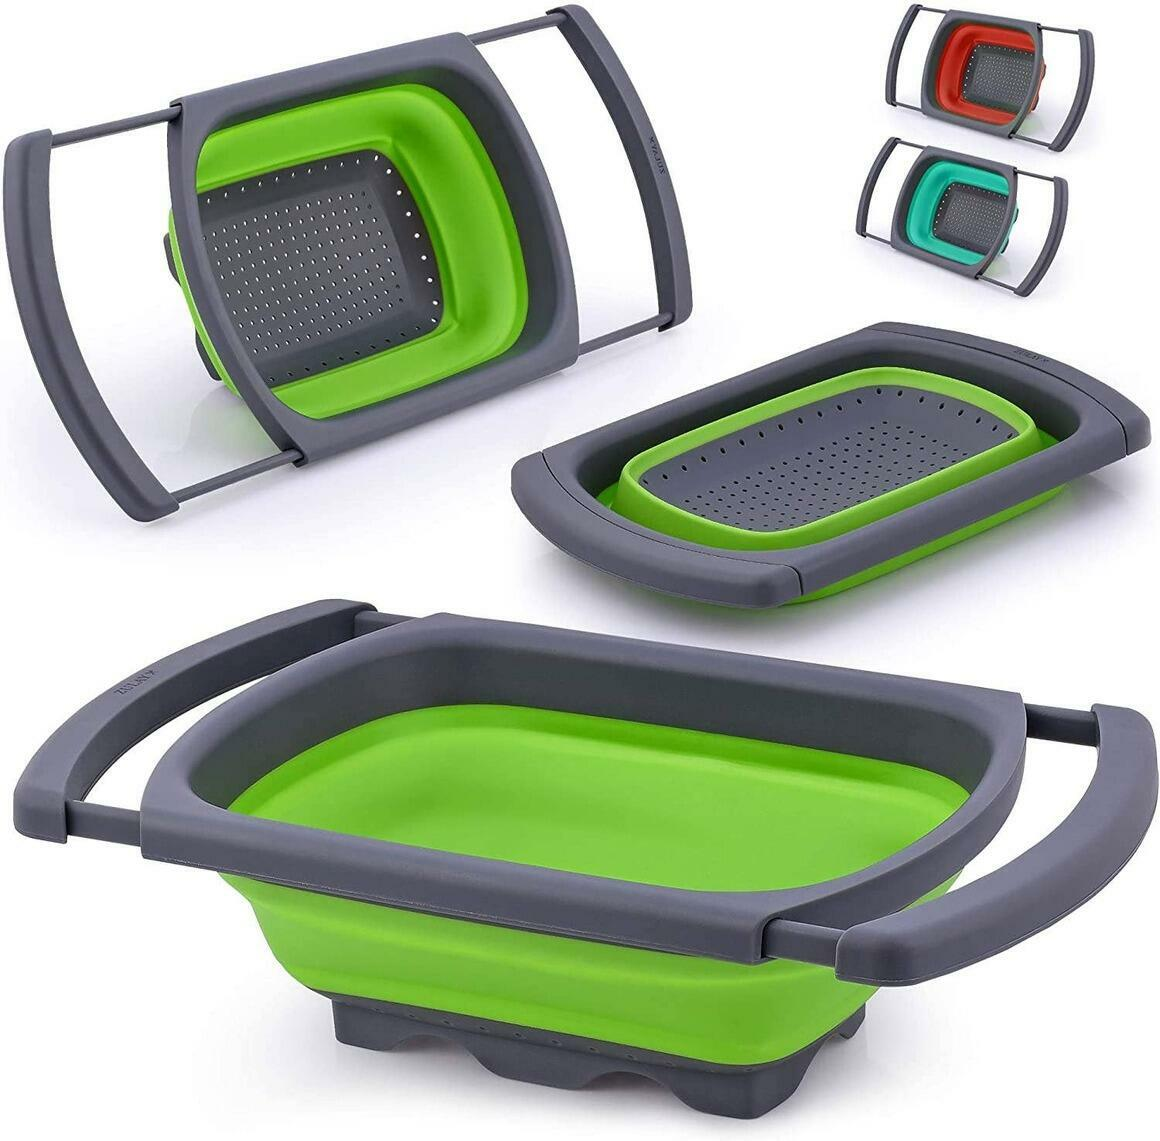 Collapsible Colander With Extendable Handles | Trada Marketplace